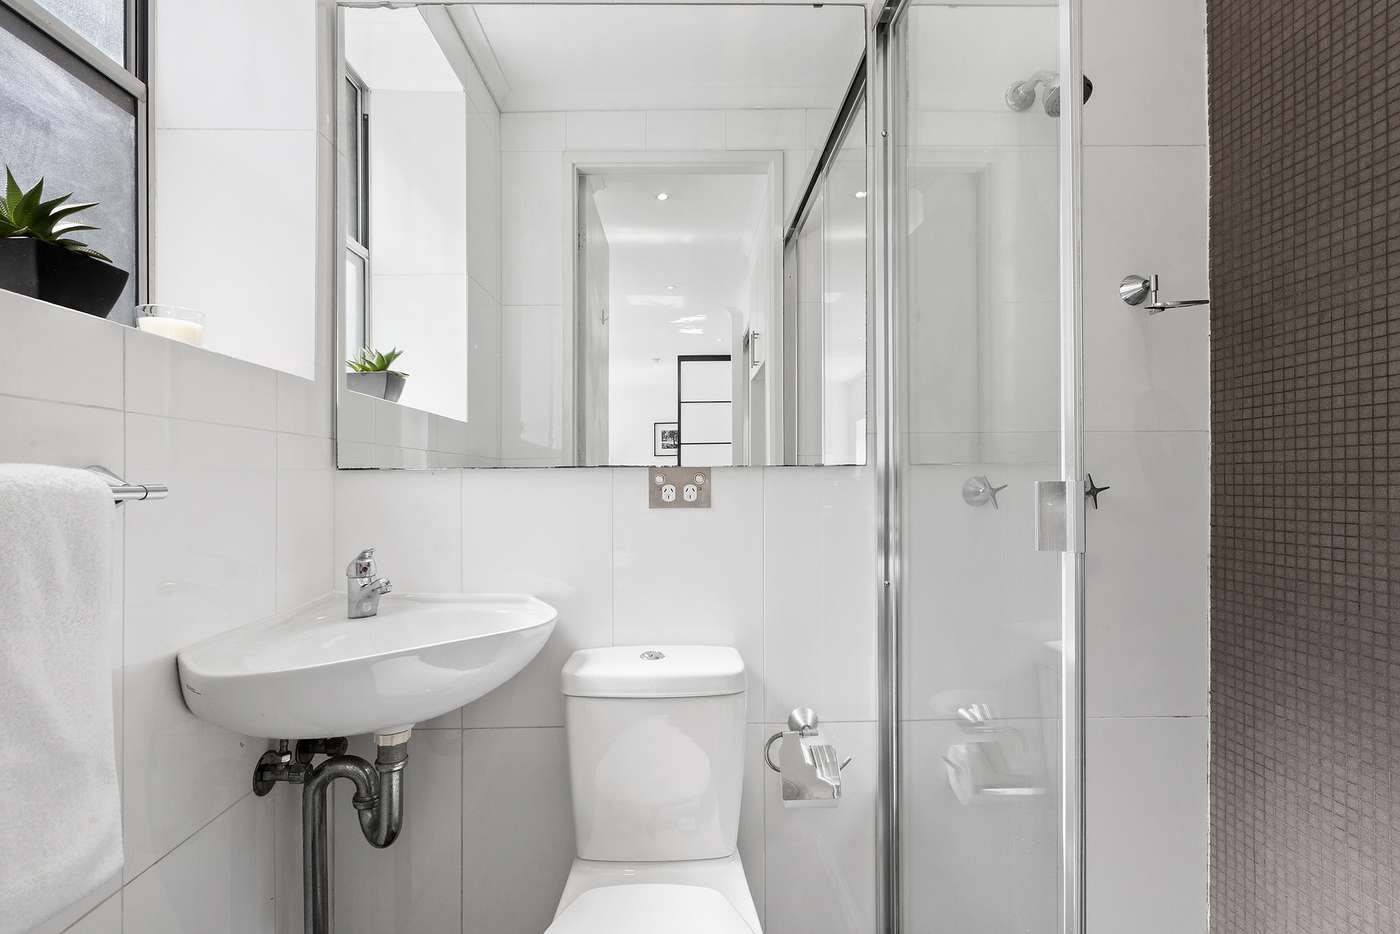 Sixth view of Homely studio listing, 8/165-167 Victoria Street, Potts Point NSW 2011